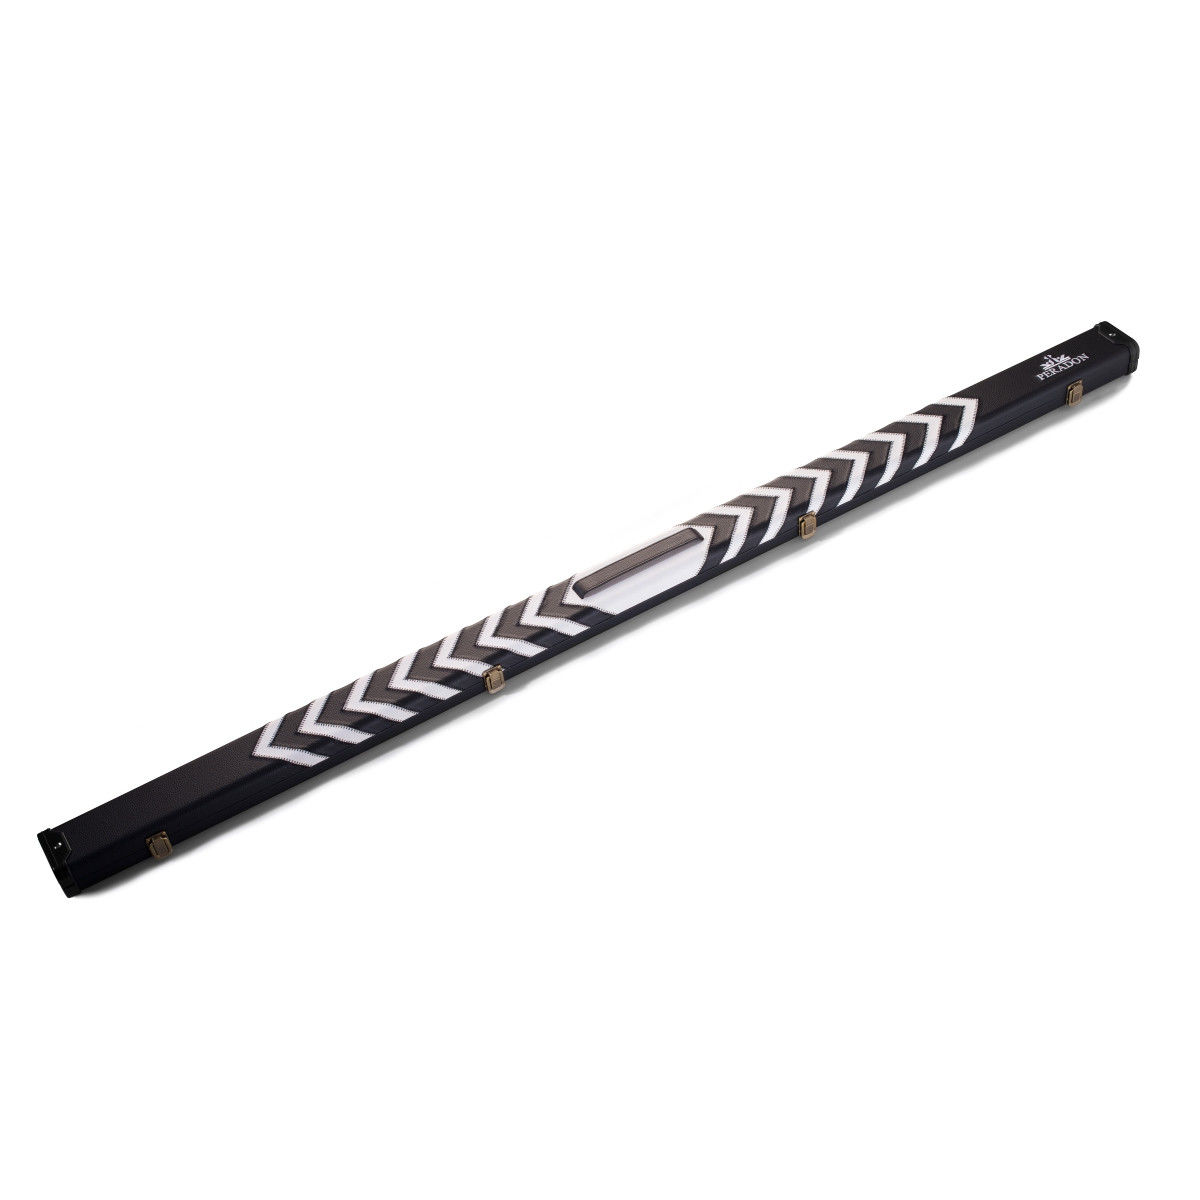 PERADON BLACK AND WHITE CLUBMAN CUE CASE - 1 PIECE CUES - product images  of